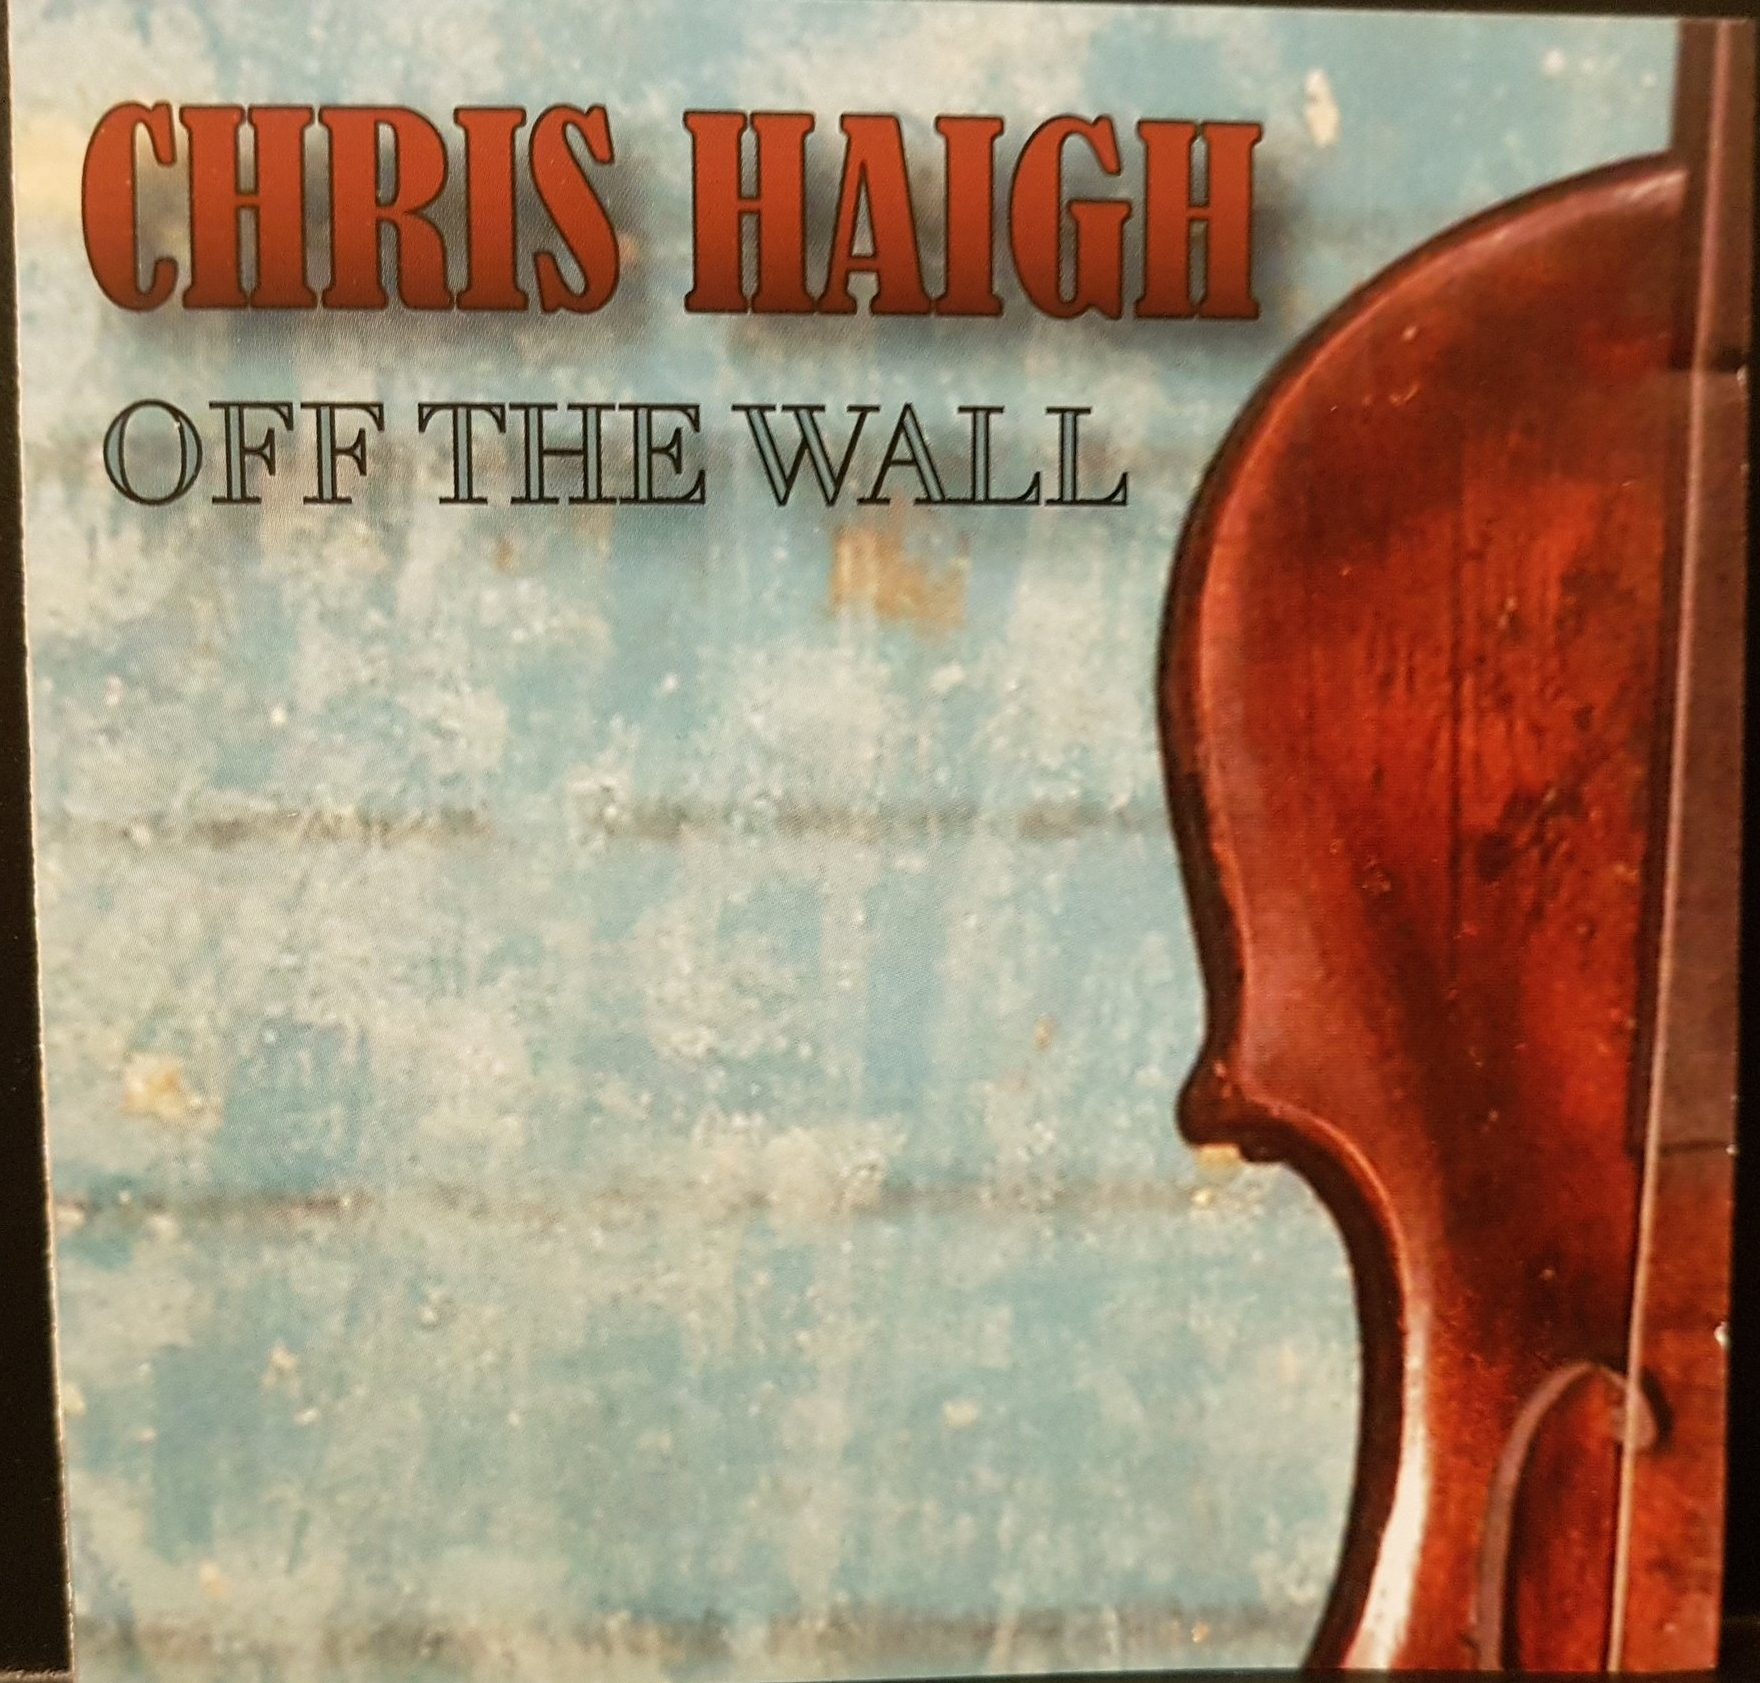 "Chris Haigh ""Off the Wall"" 2008"